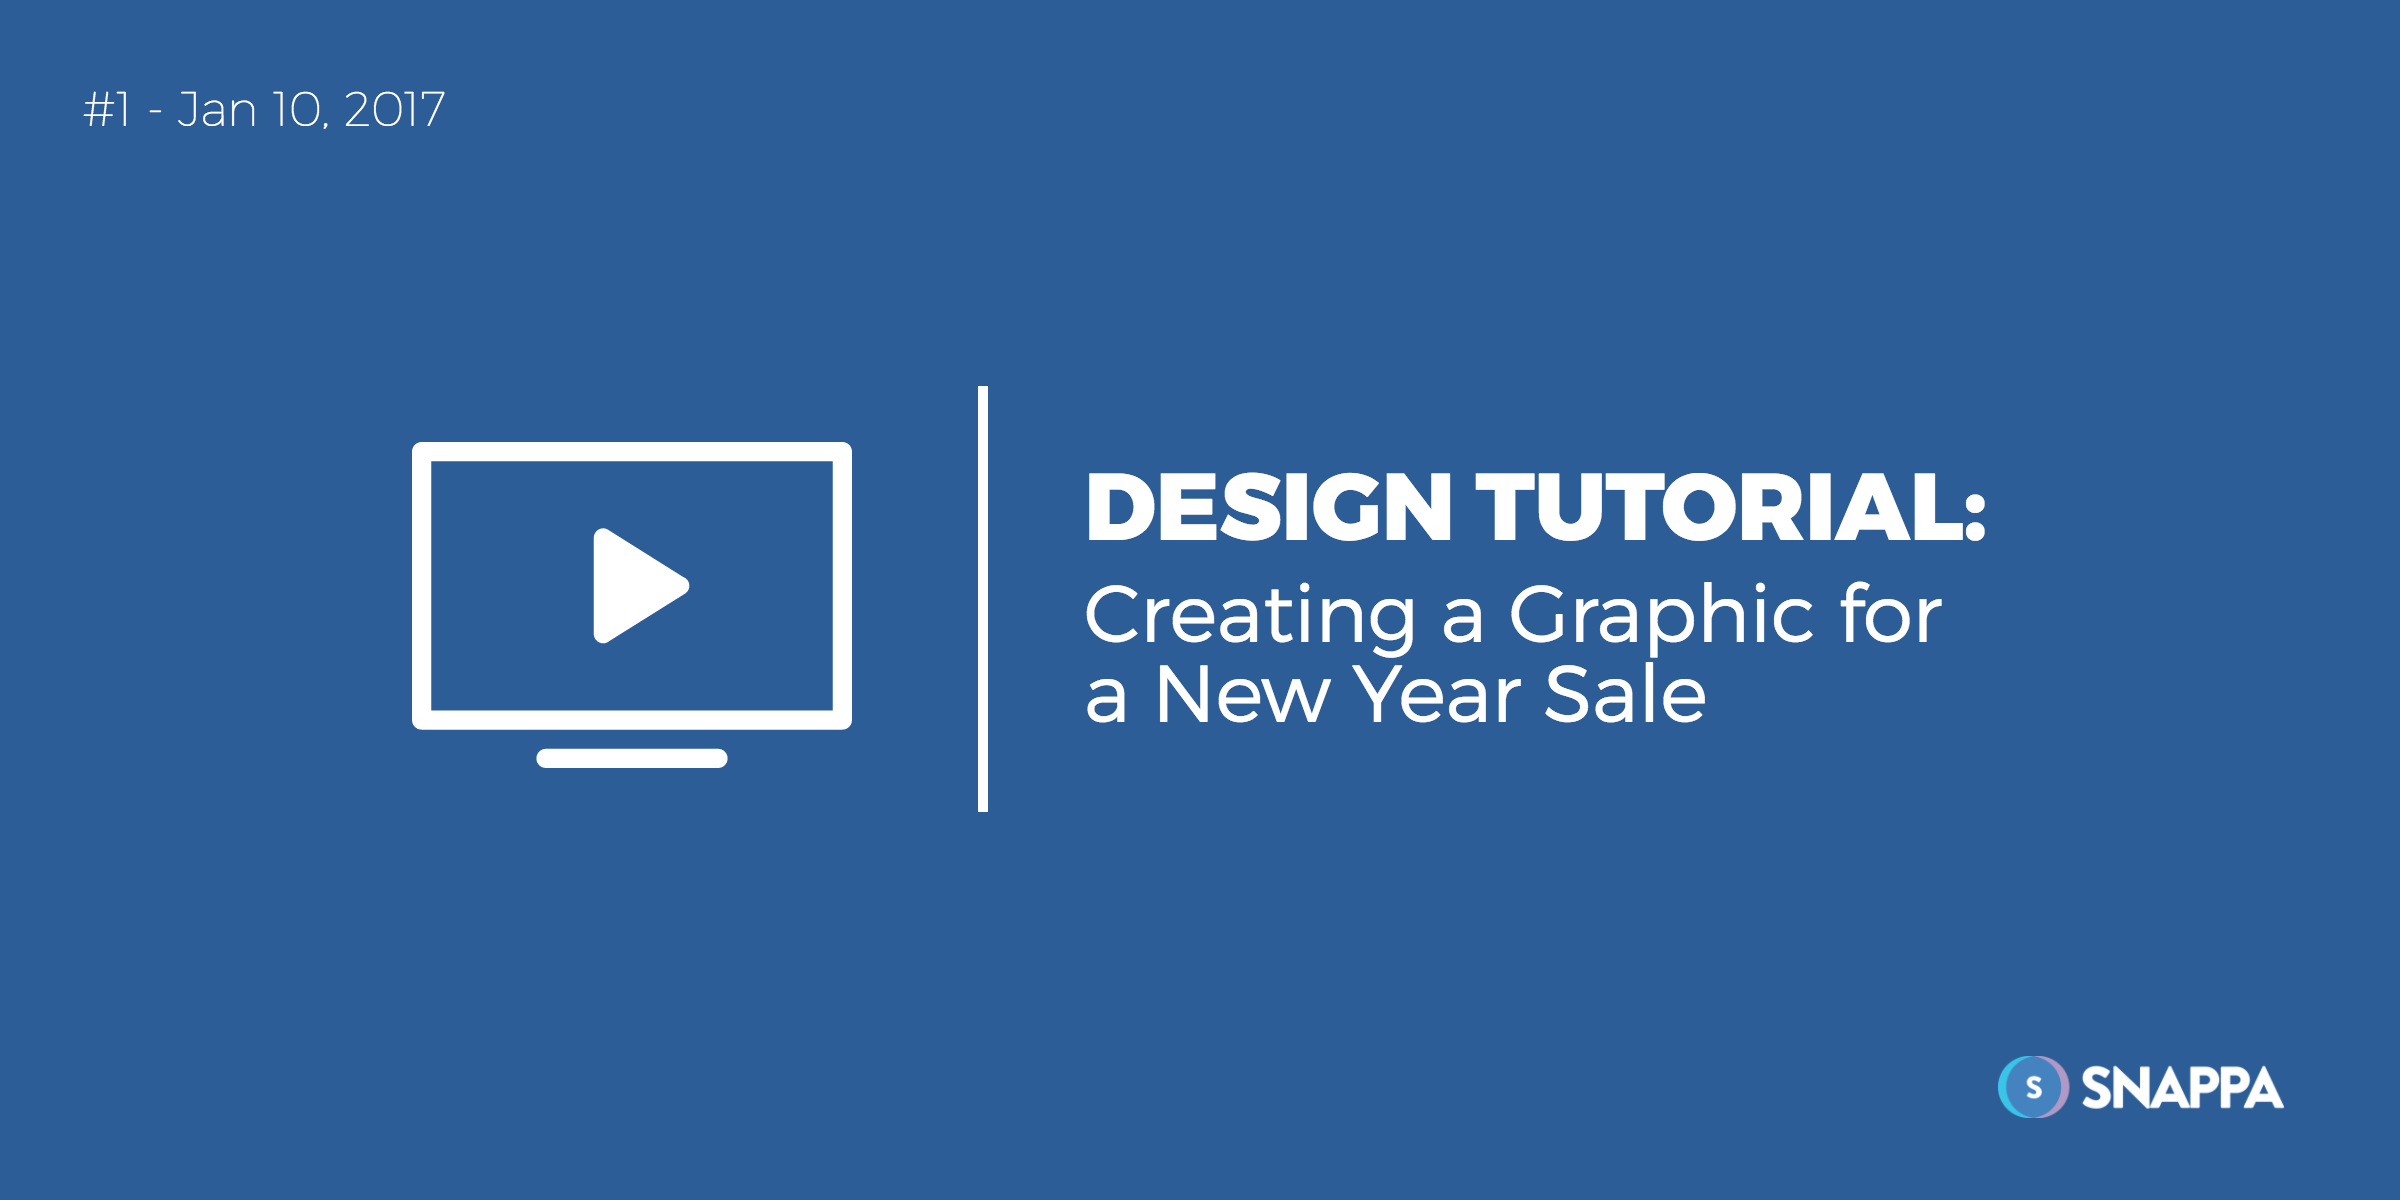 New year graphic design tutorial